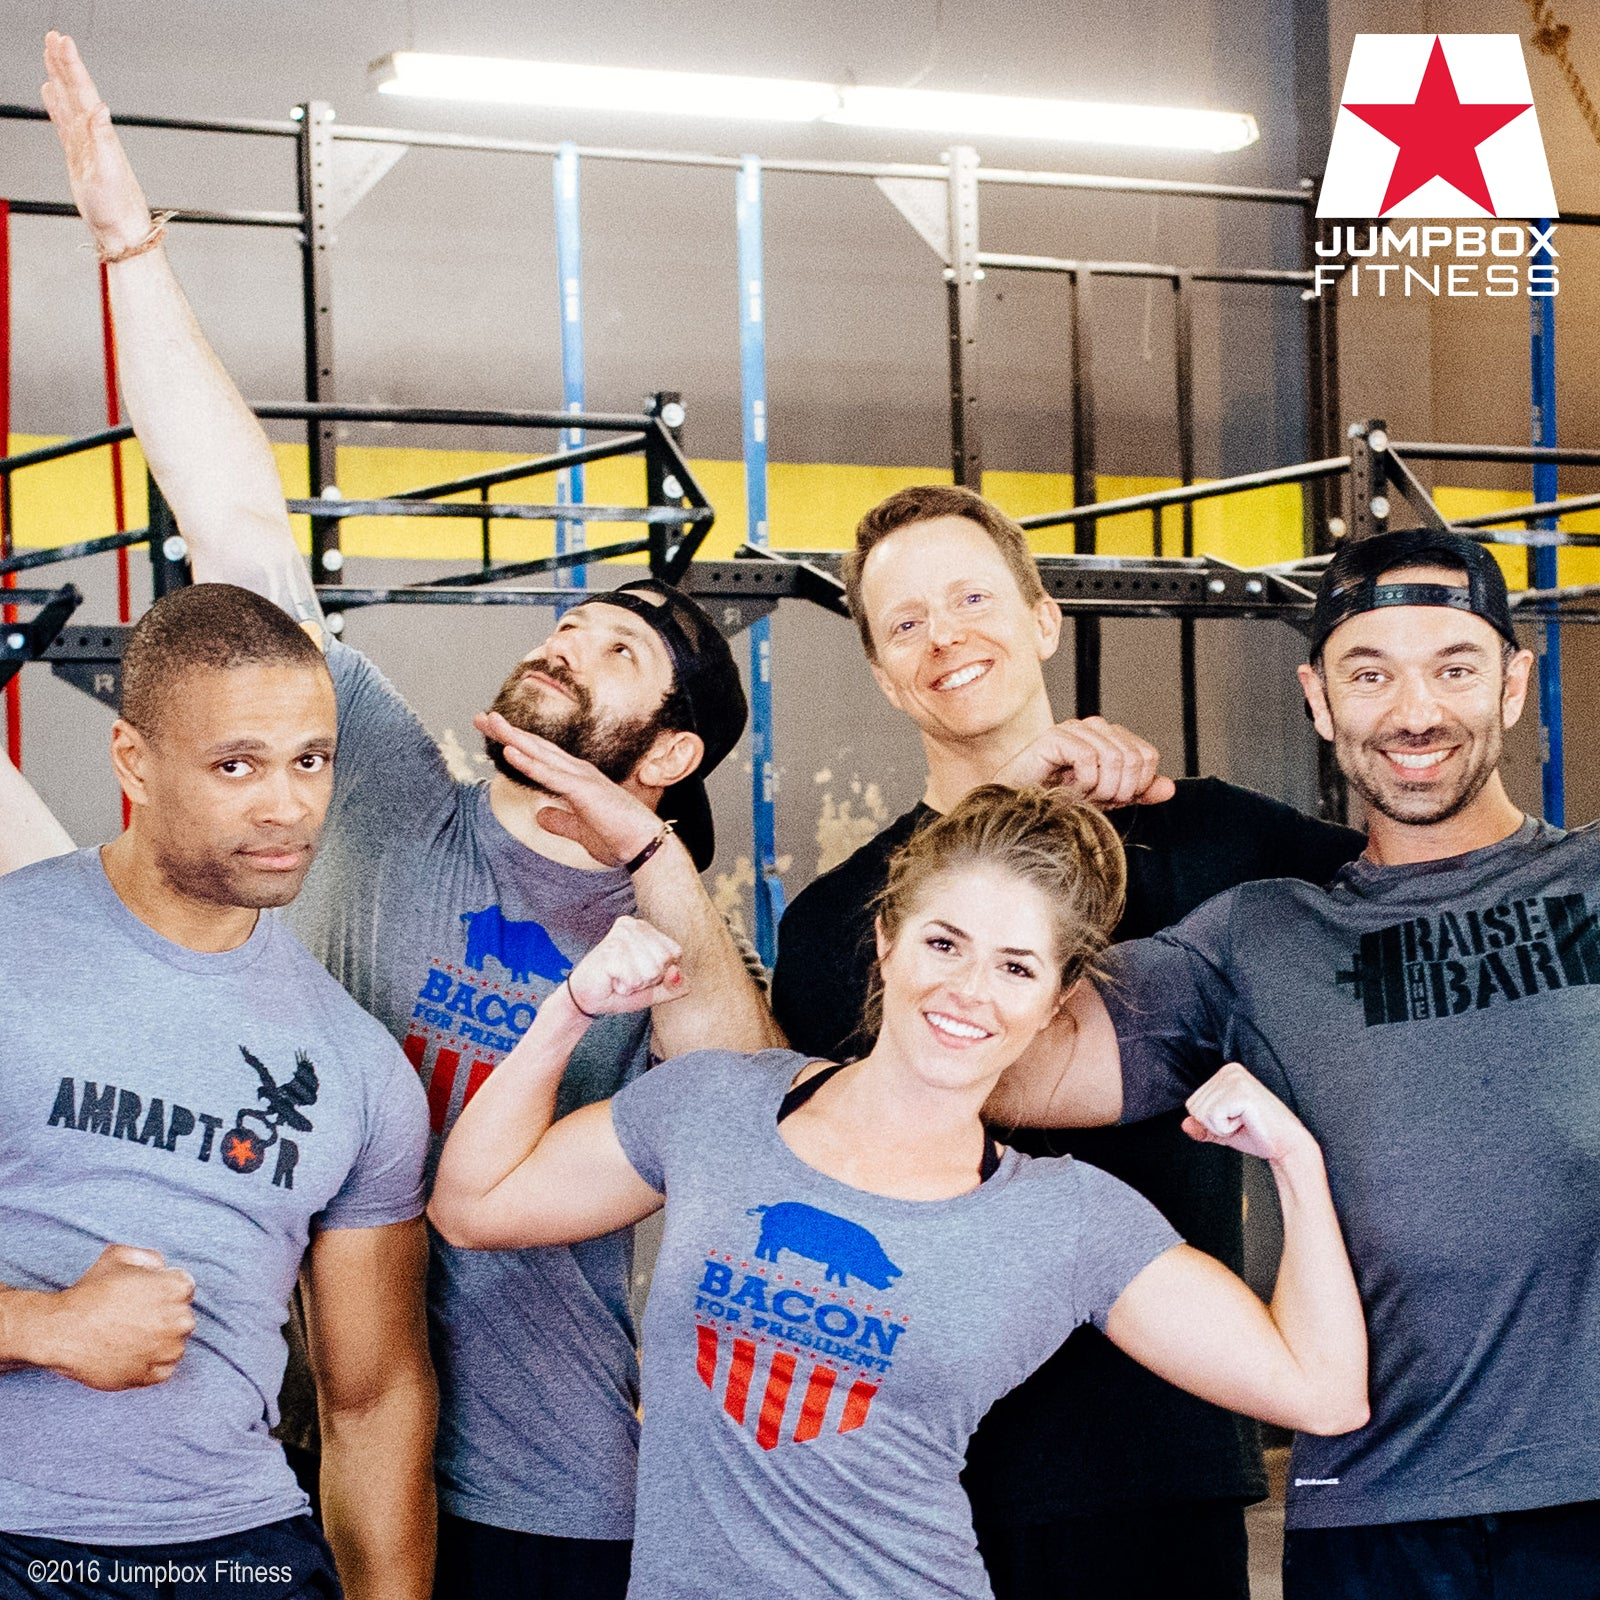 Team Jumpbox Fitness after a great crossfit WOD - Bacon for President tshirt